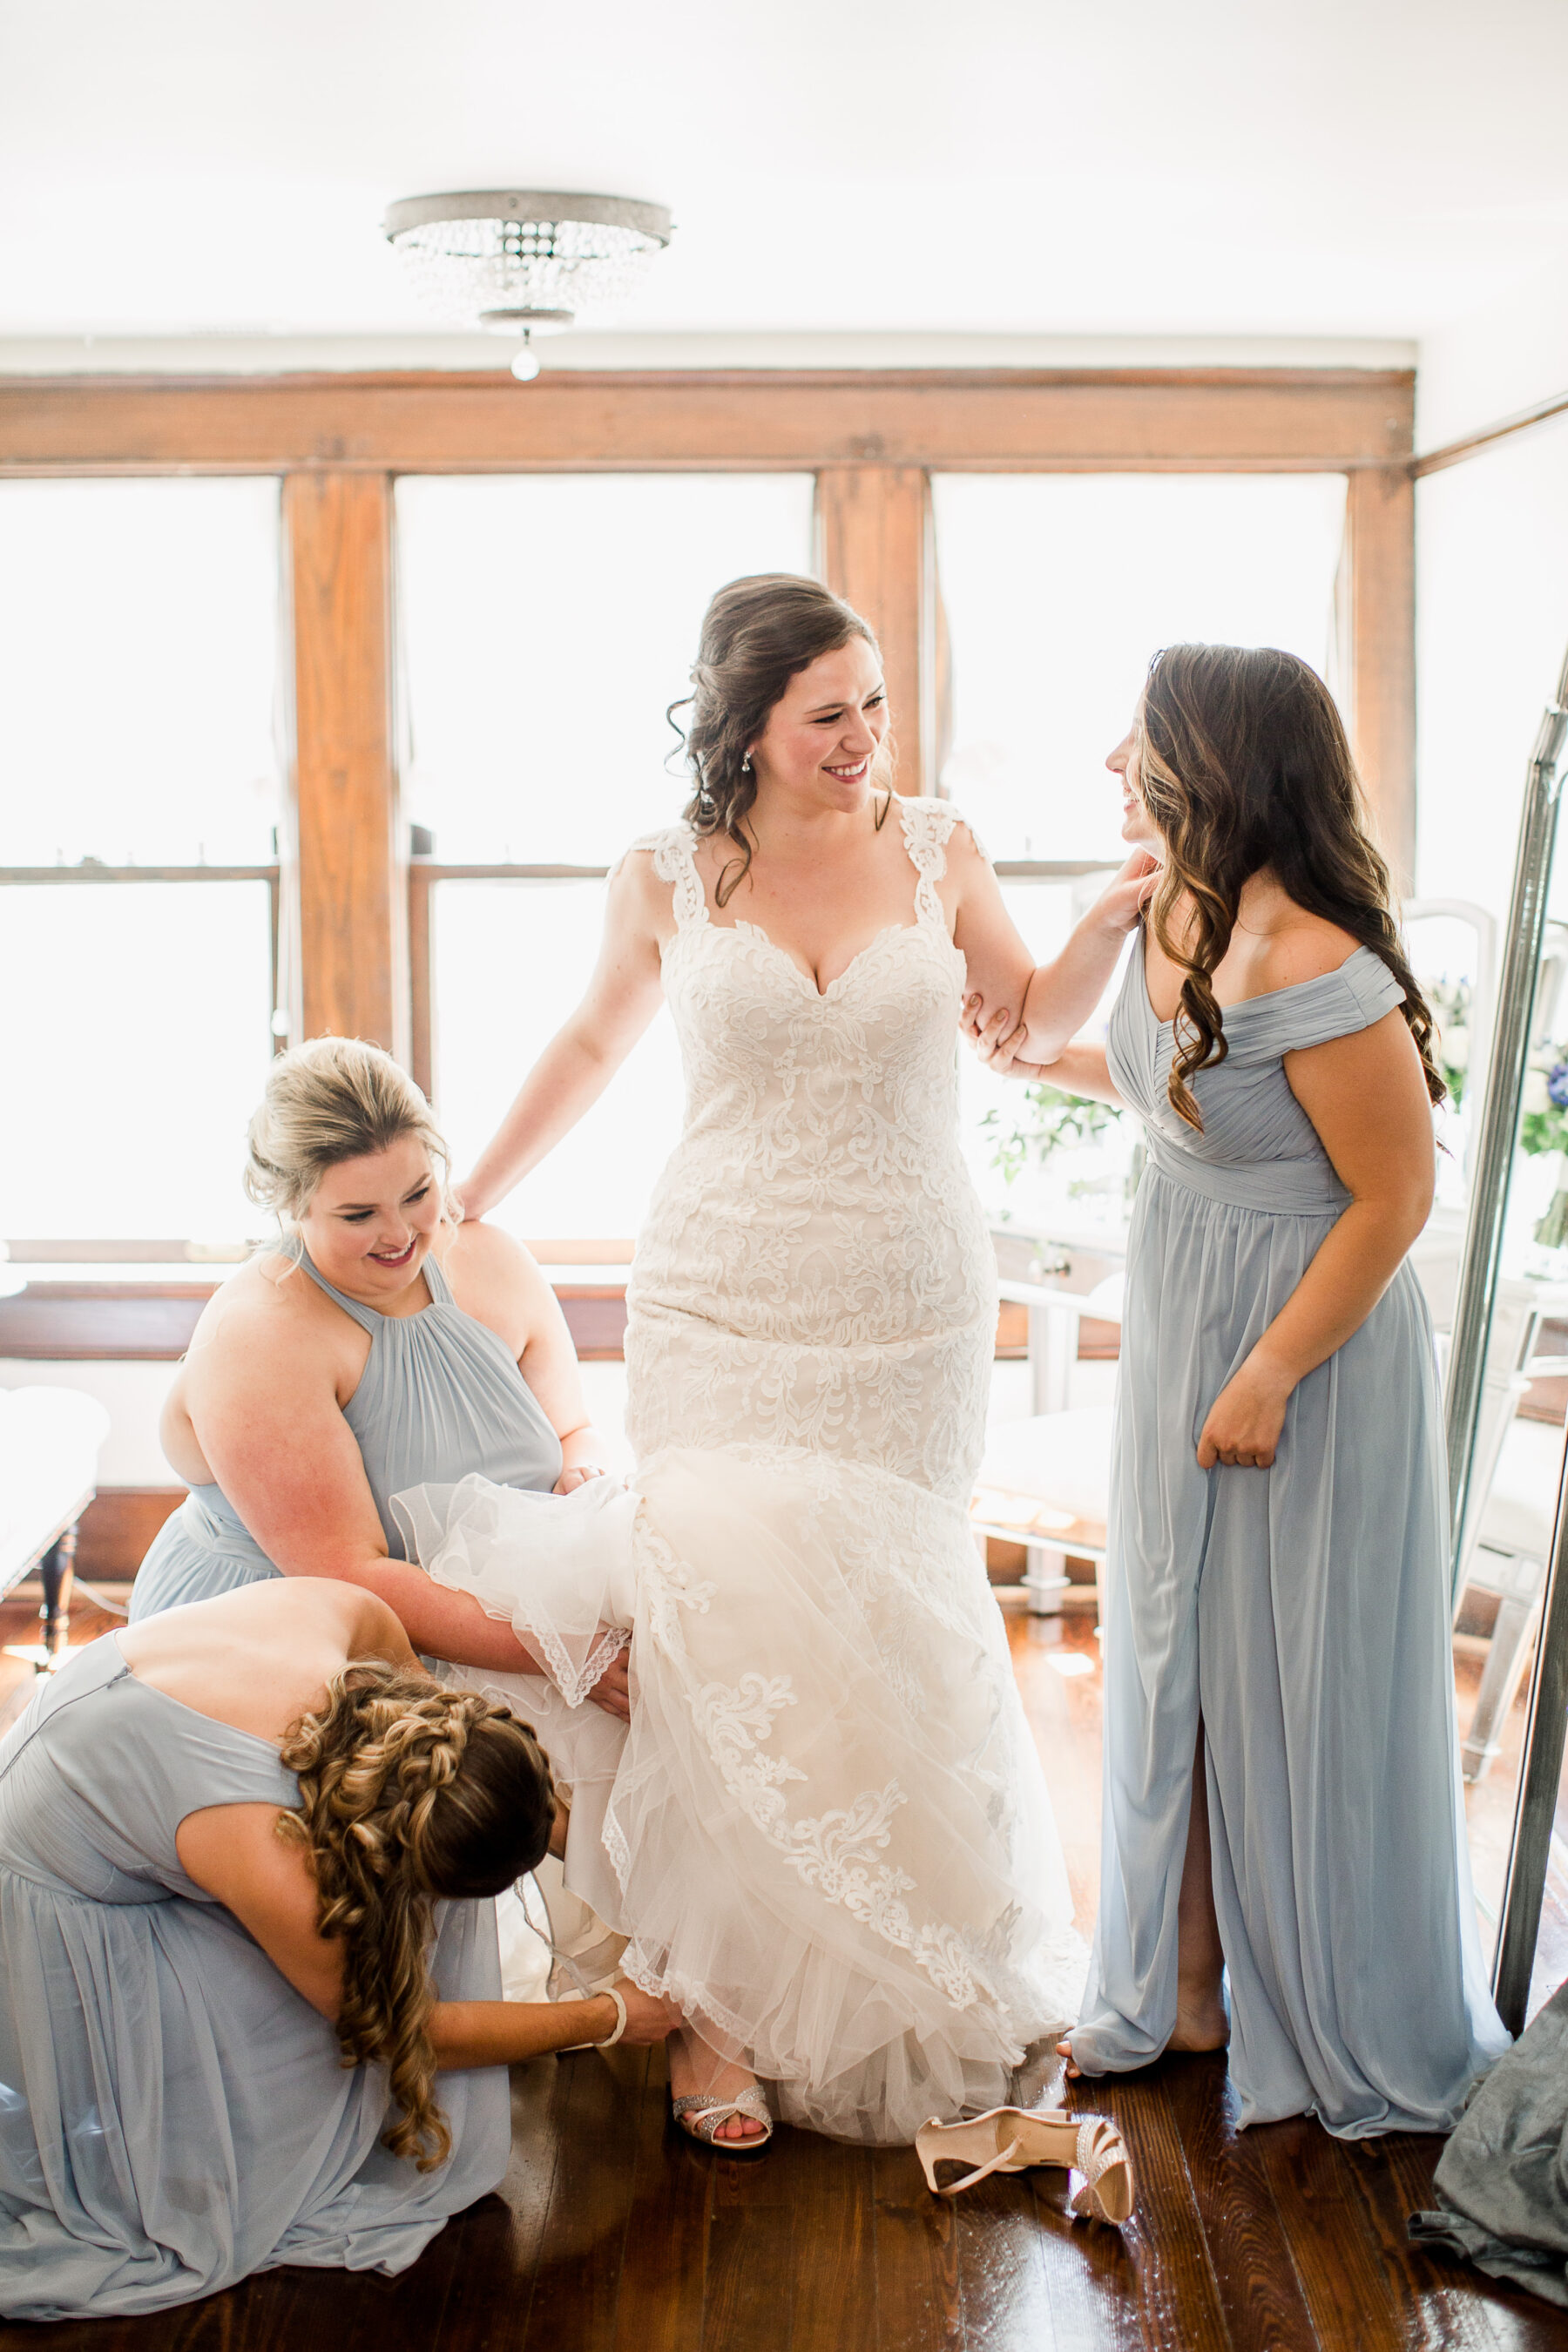 Bridal party getting ready photo ideas | Nashville Bride Guide